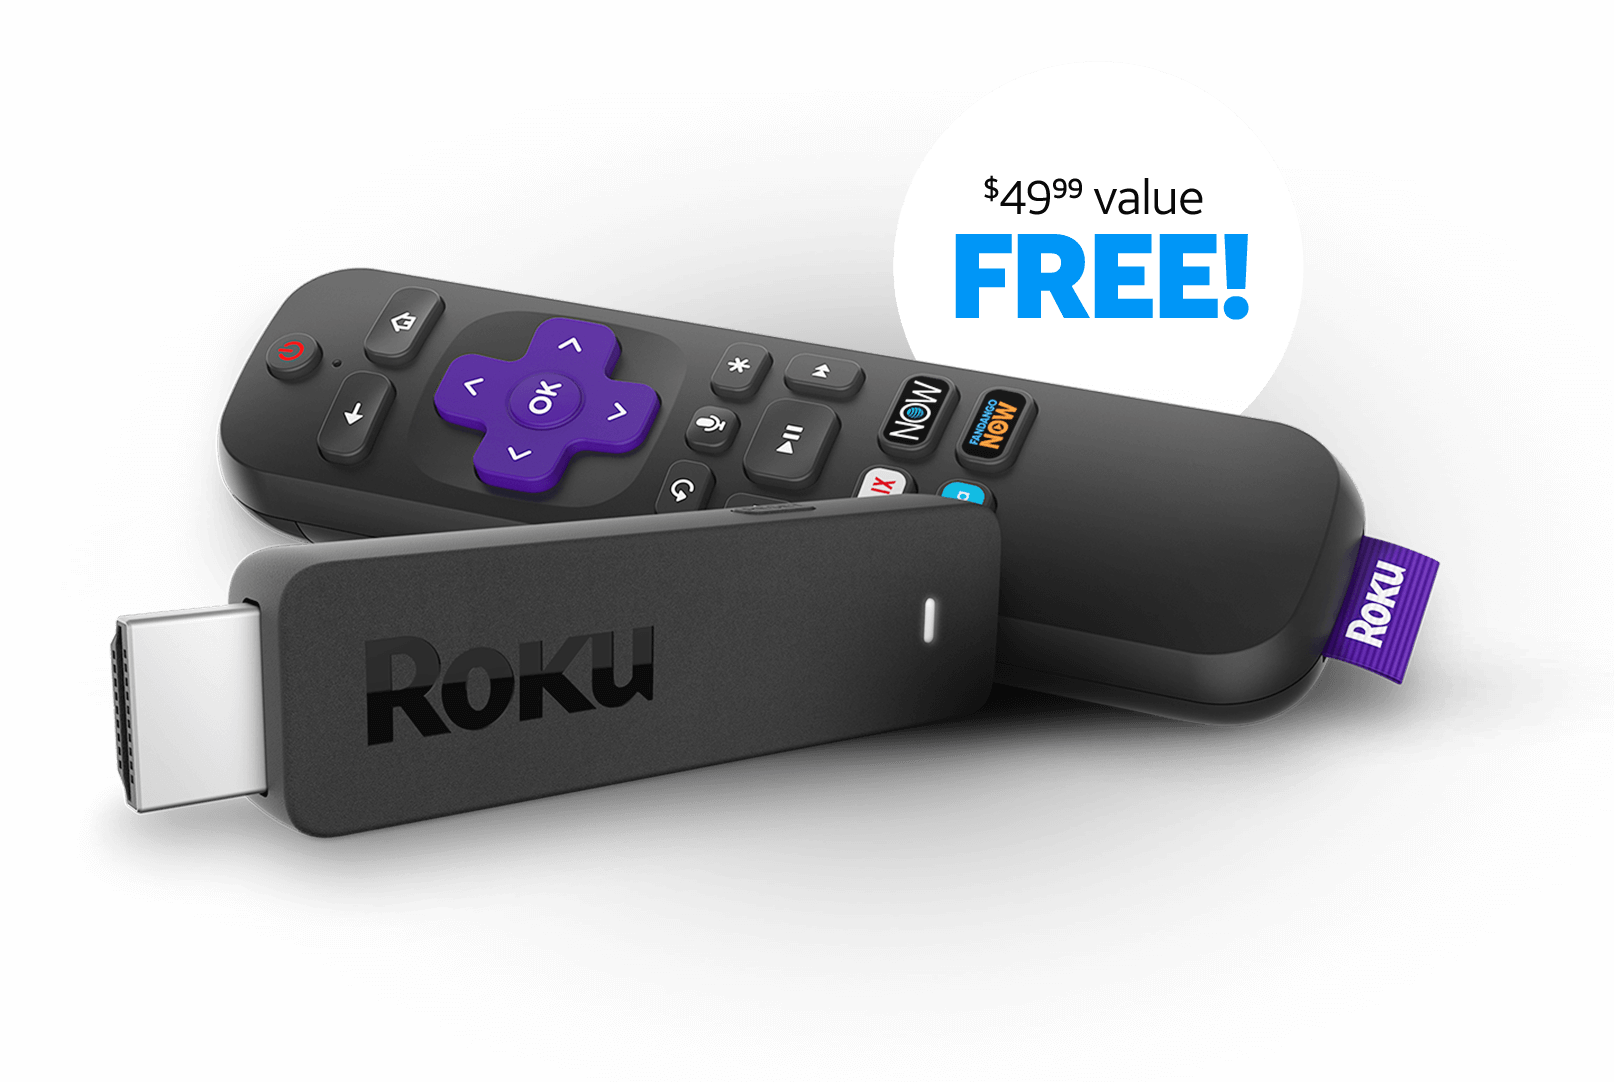 Bank of America cards: spend $35 at DirecTV Now, get $35 back+free Roku streaming stick (YMMV)